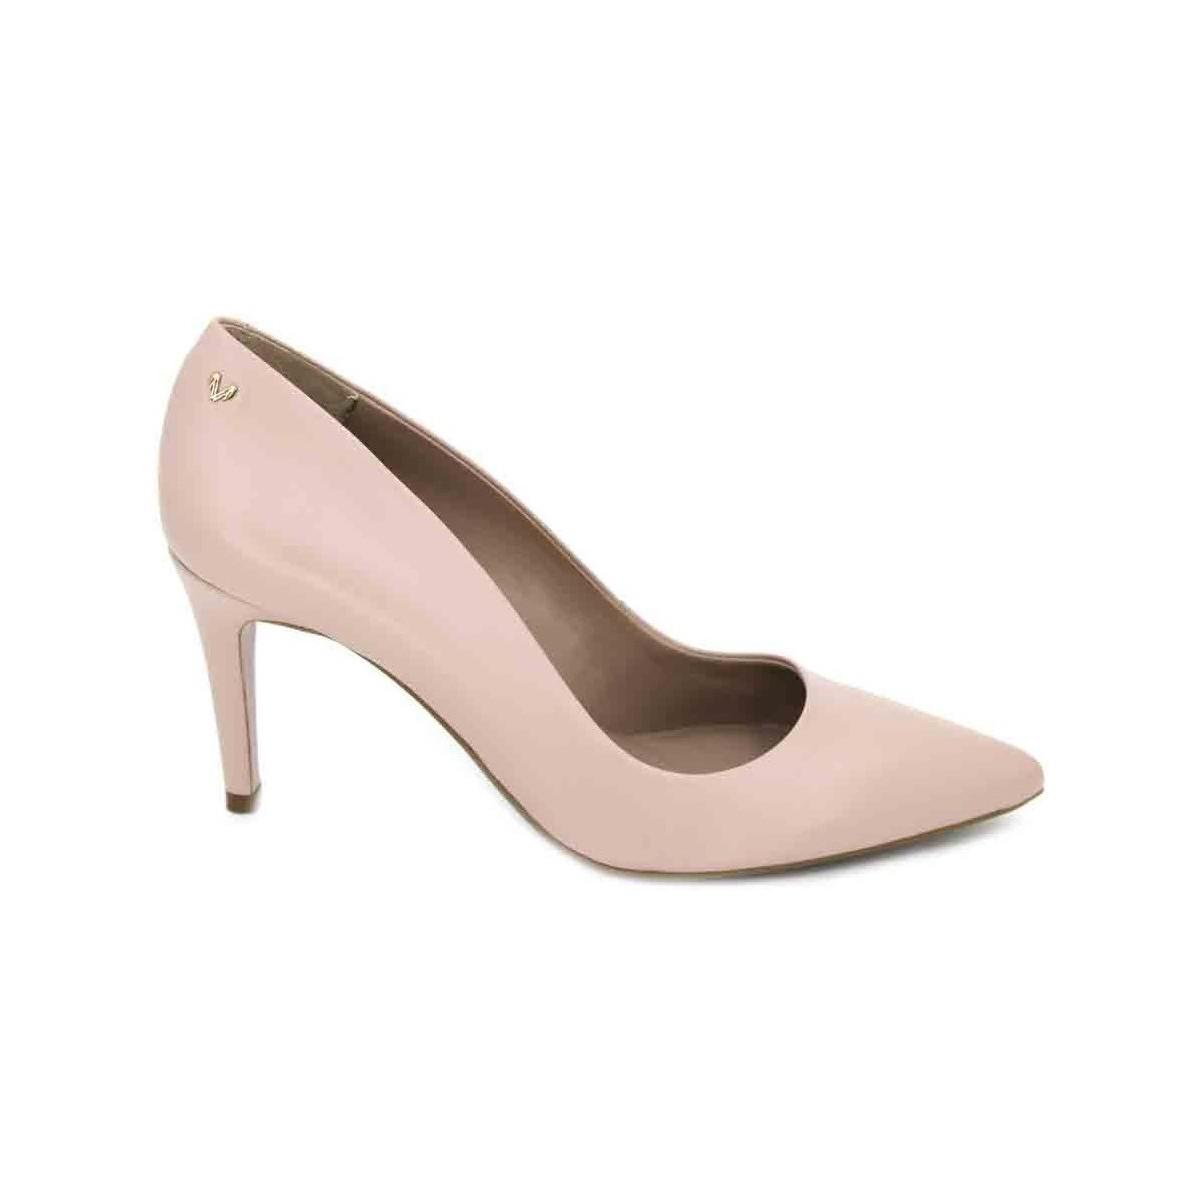 bcd99a5d9310 martinelli-beige-Selena-1365-3486n-Womens-Shoes-Womens-Court-Shoes -In-Beige.jpeg